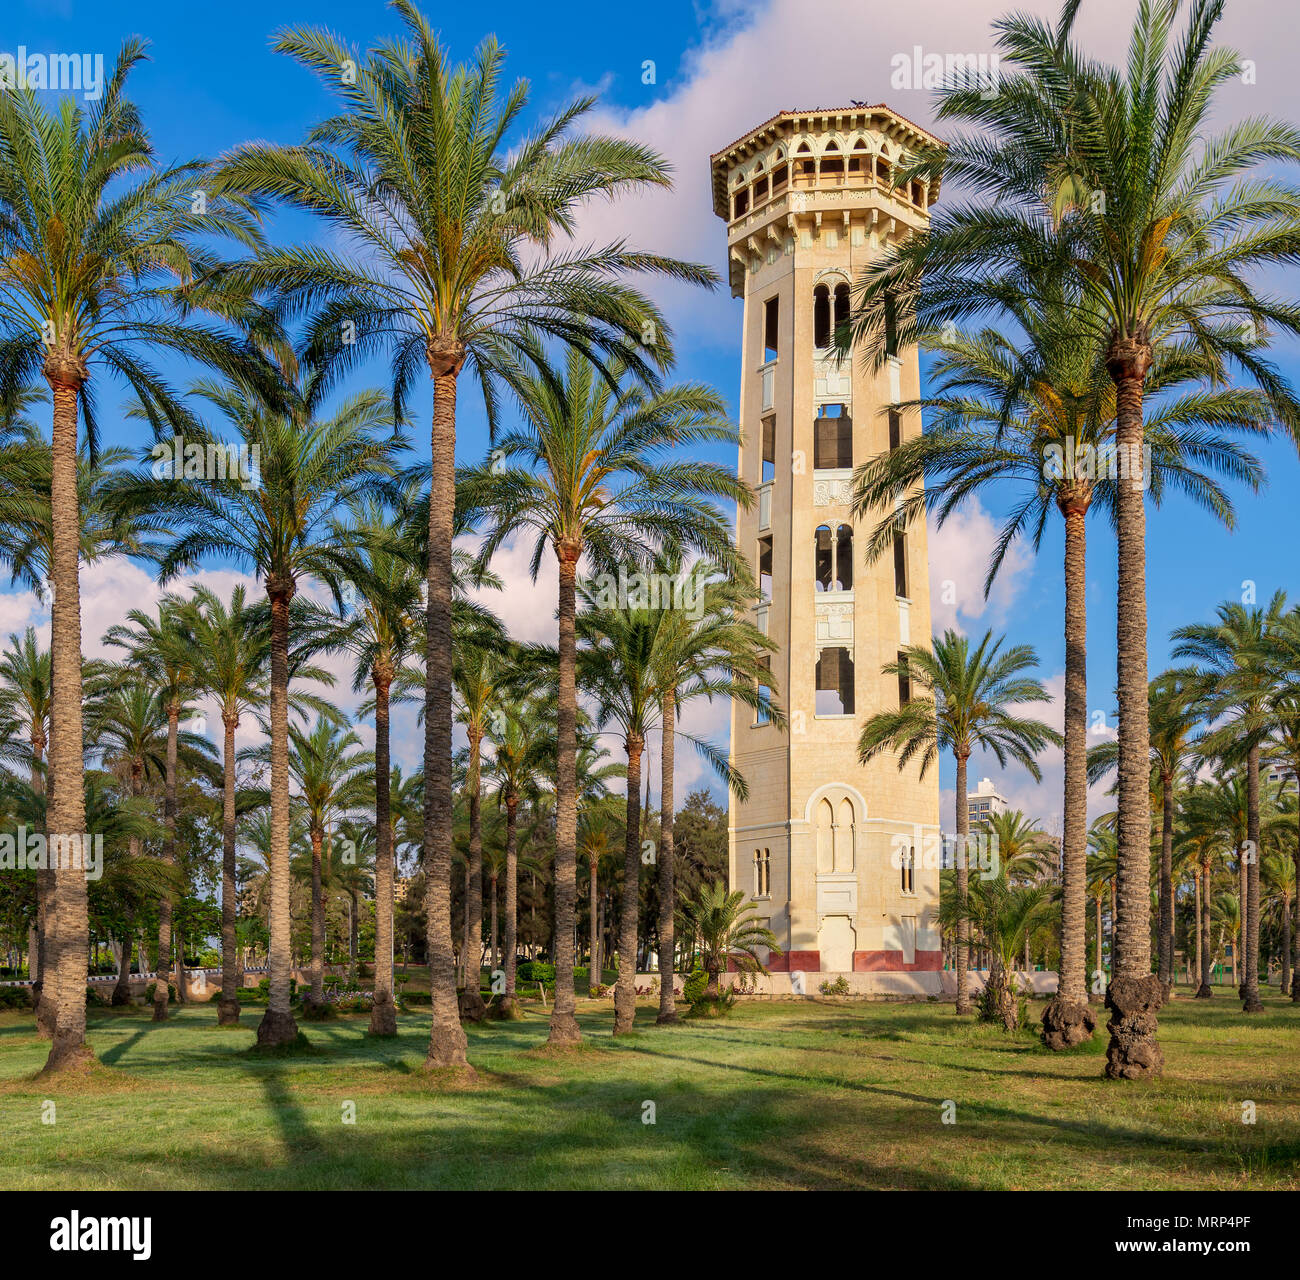 Old decorated antique elevated water tank framed by high palm trees before sunset with partly cloudy blue sky, Montaza public park, Alexandria, Egypt - Stock Image